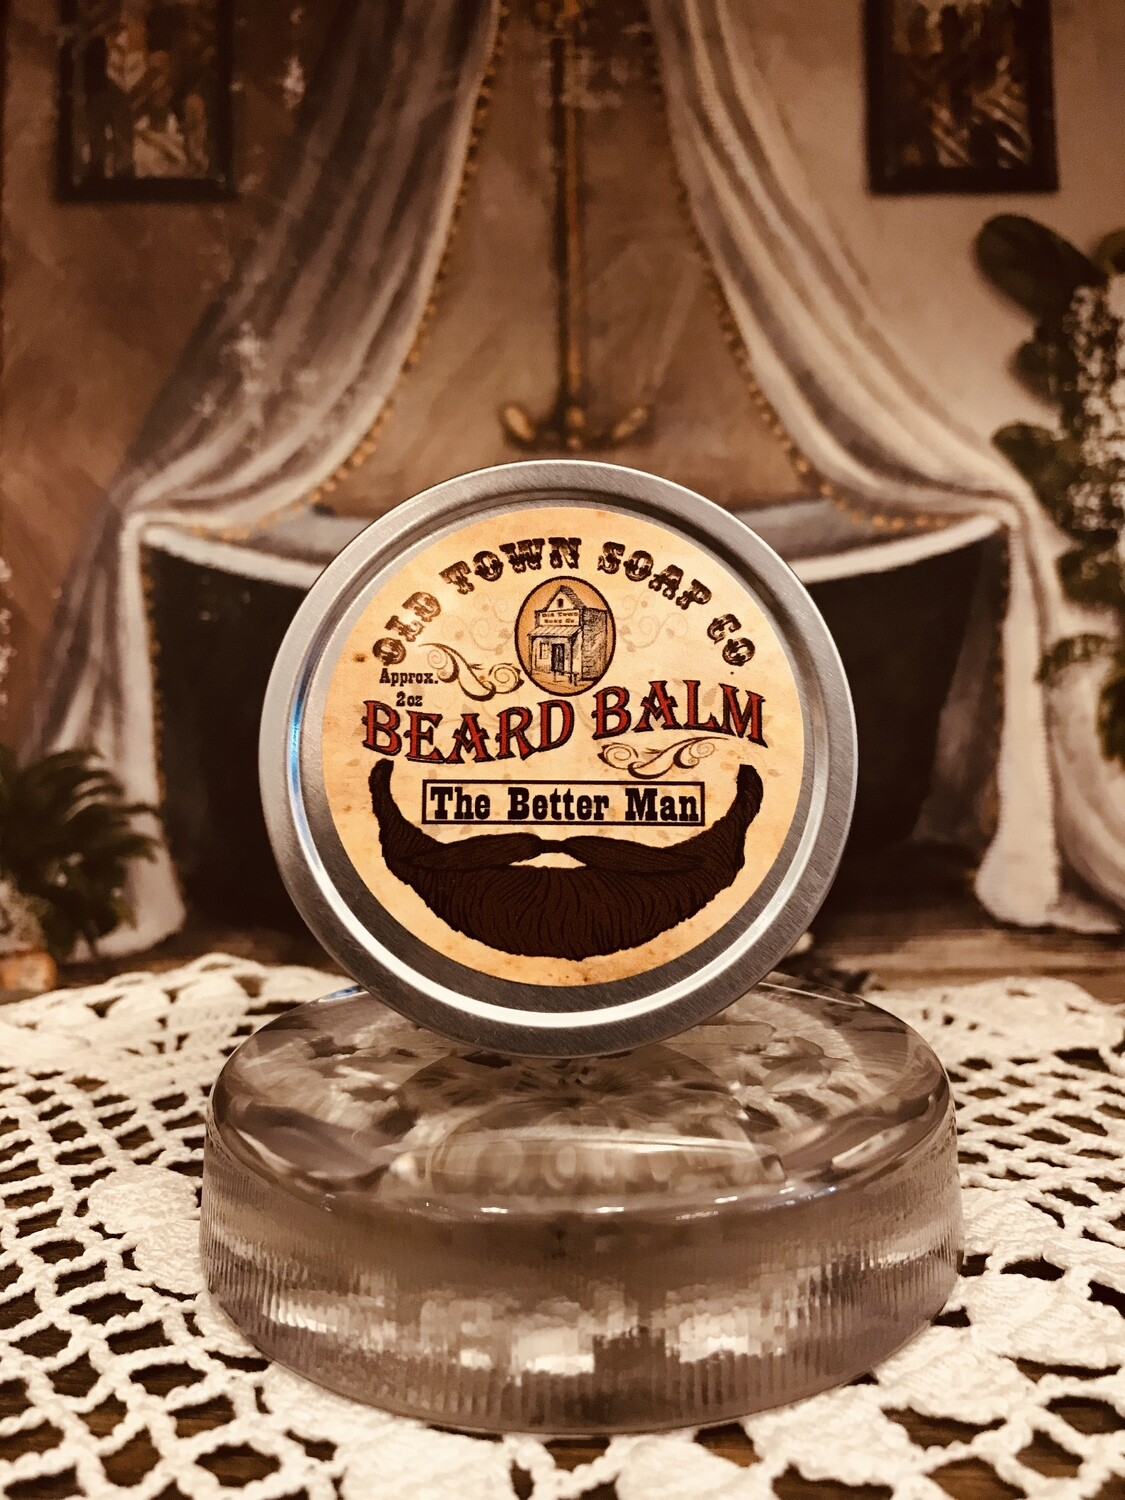 The Better Man -Beard Balm